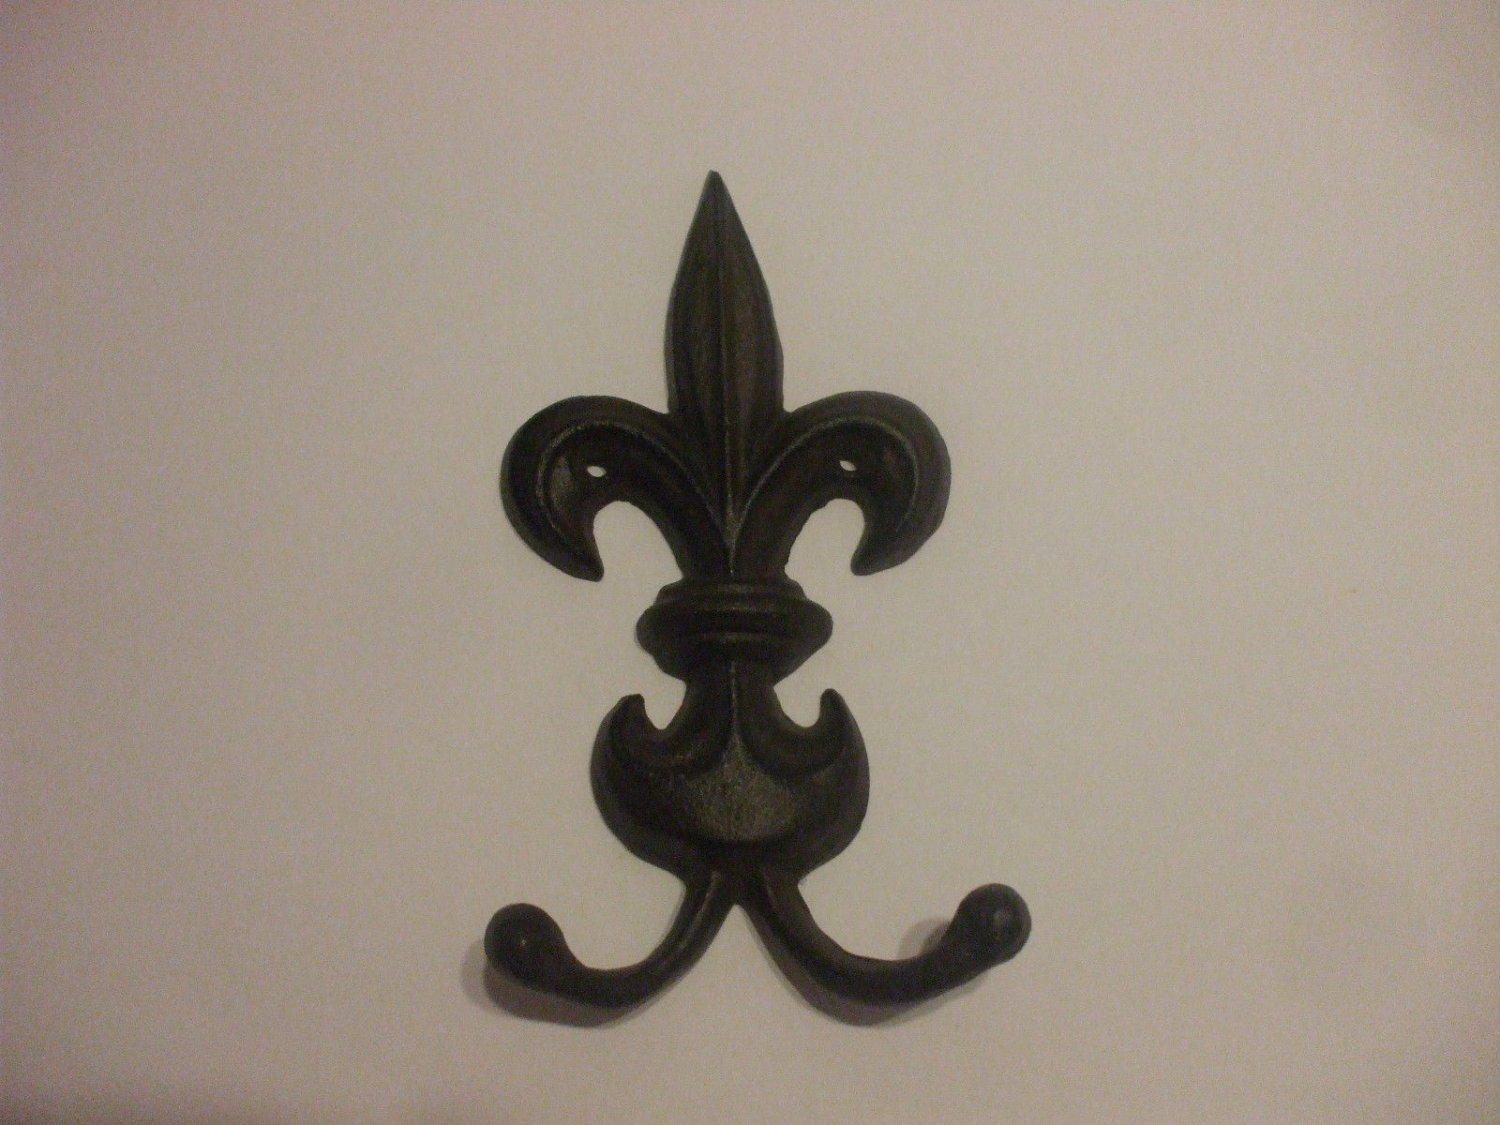 Shabby Chic Metal Wall Hook Heavy Duty Fleur De Lys 6 Inches Long 3.5 Inches Wide